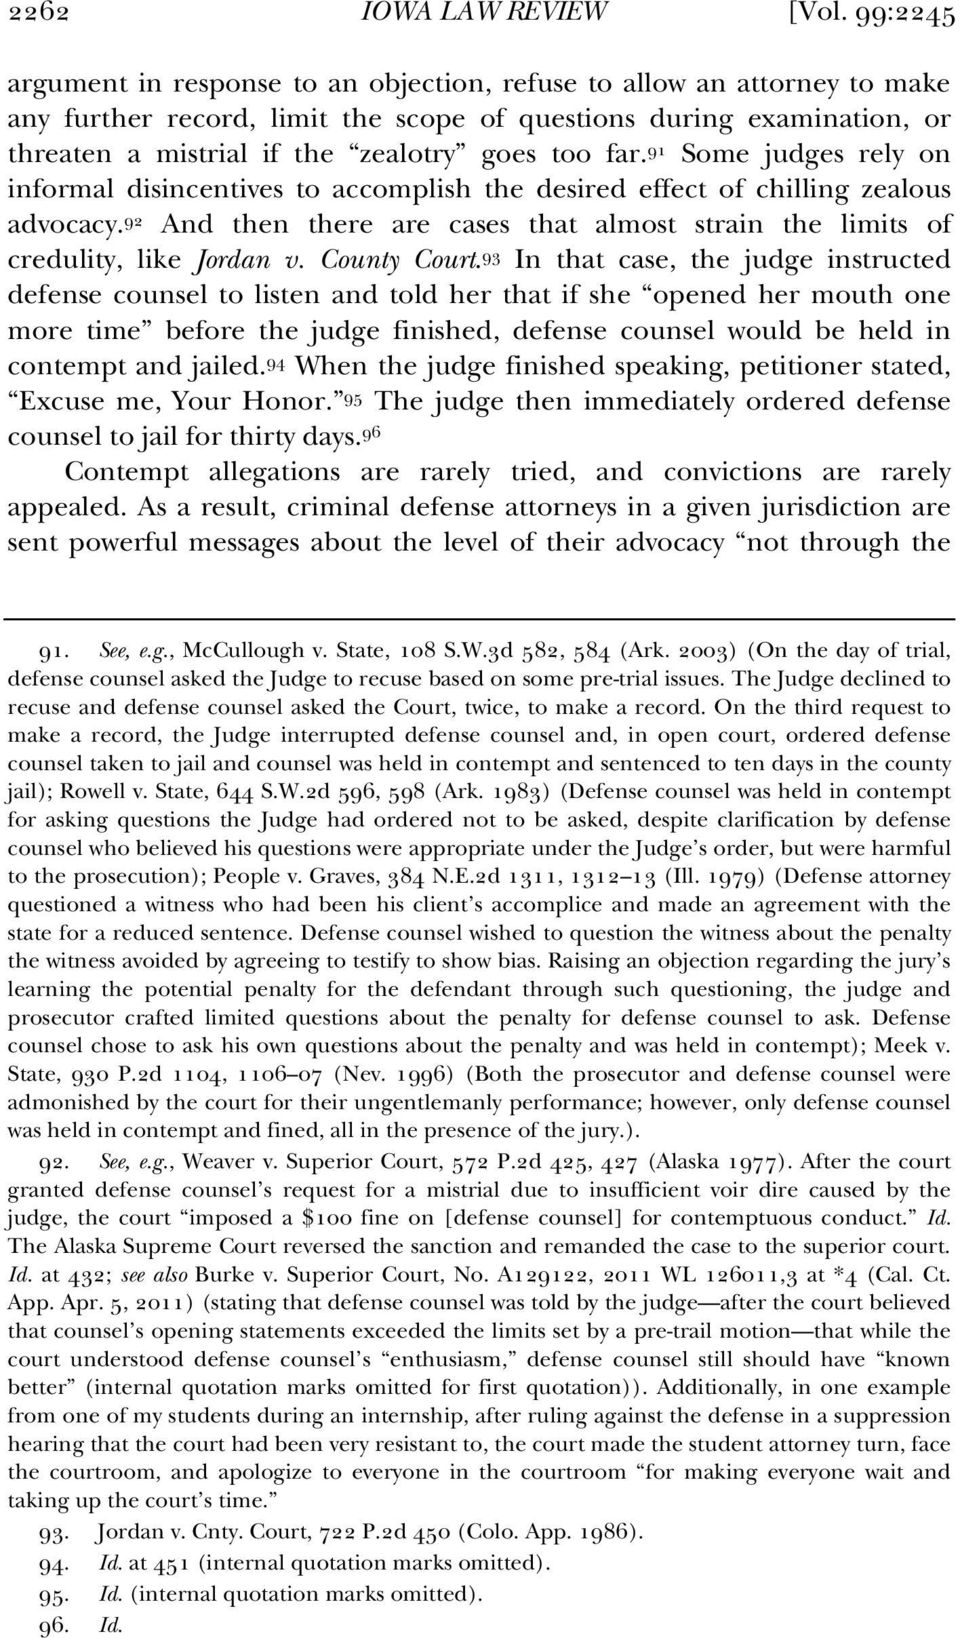 far. 91 Some judges rely on informal disincentives to accomplish the desired effect of chilling zealous advocacy. 92 And then there are cases that almost strain the limits of credulity, like Jordan v.